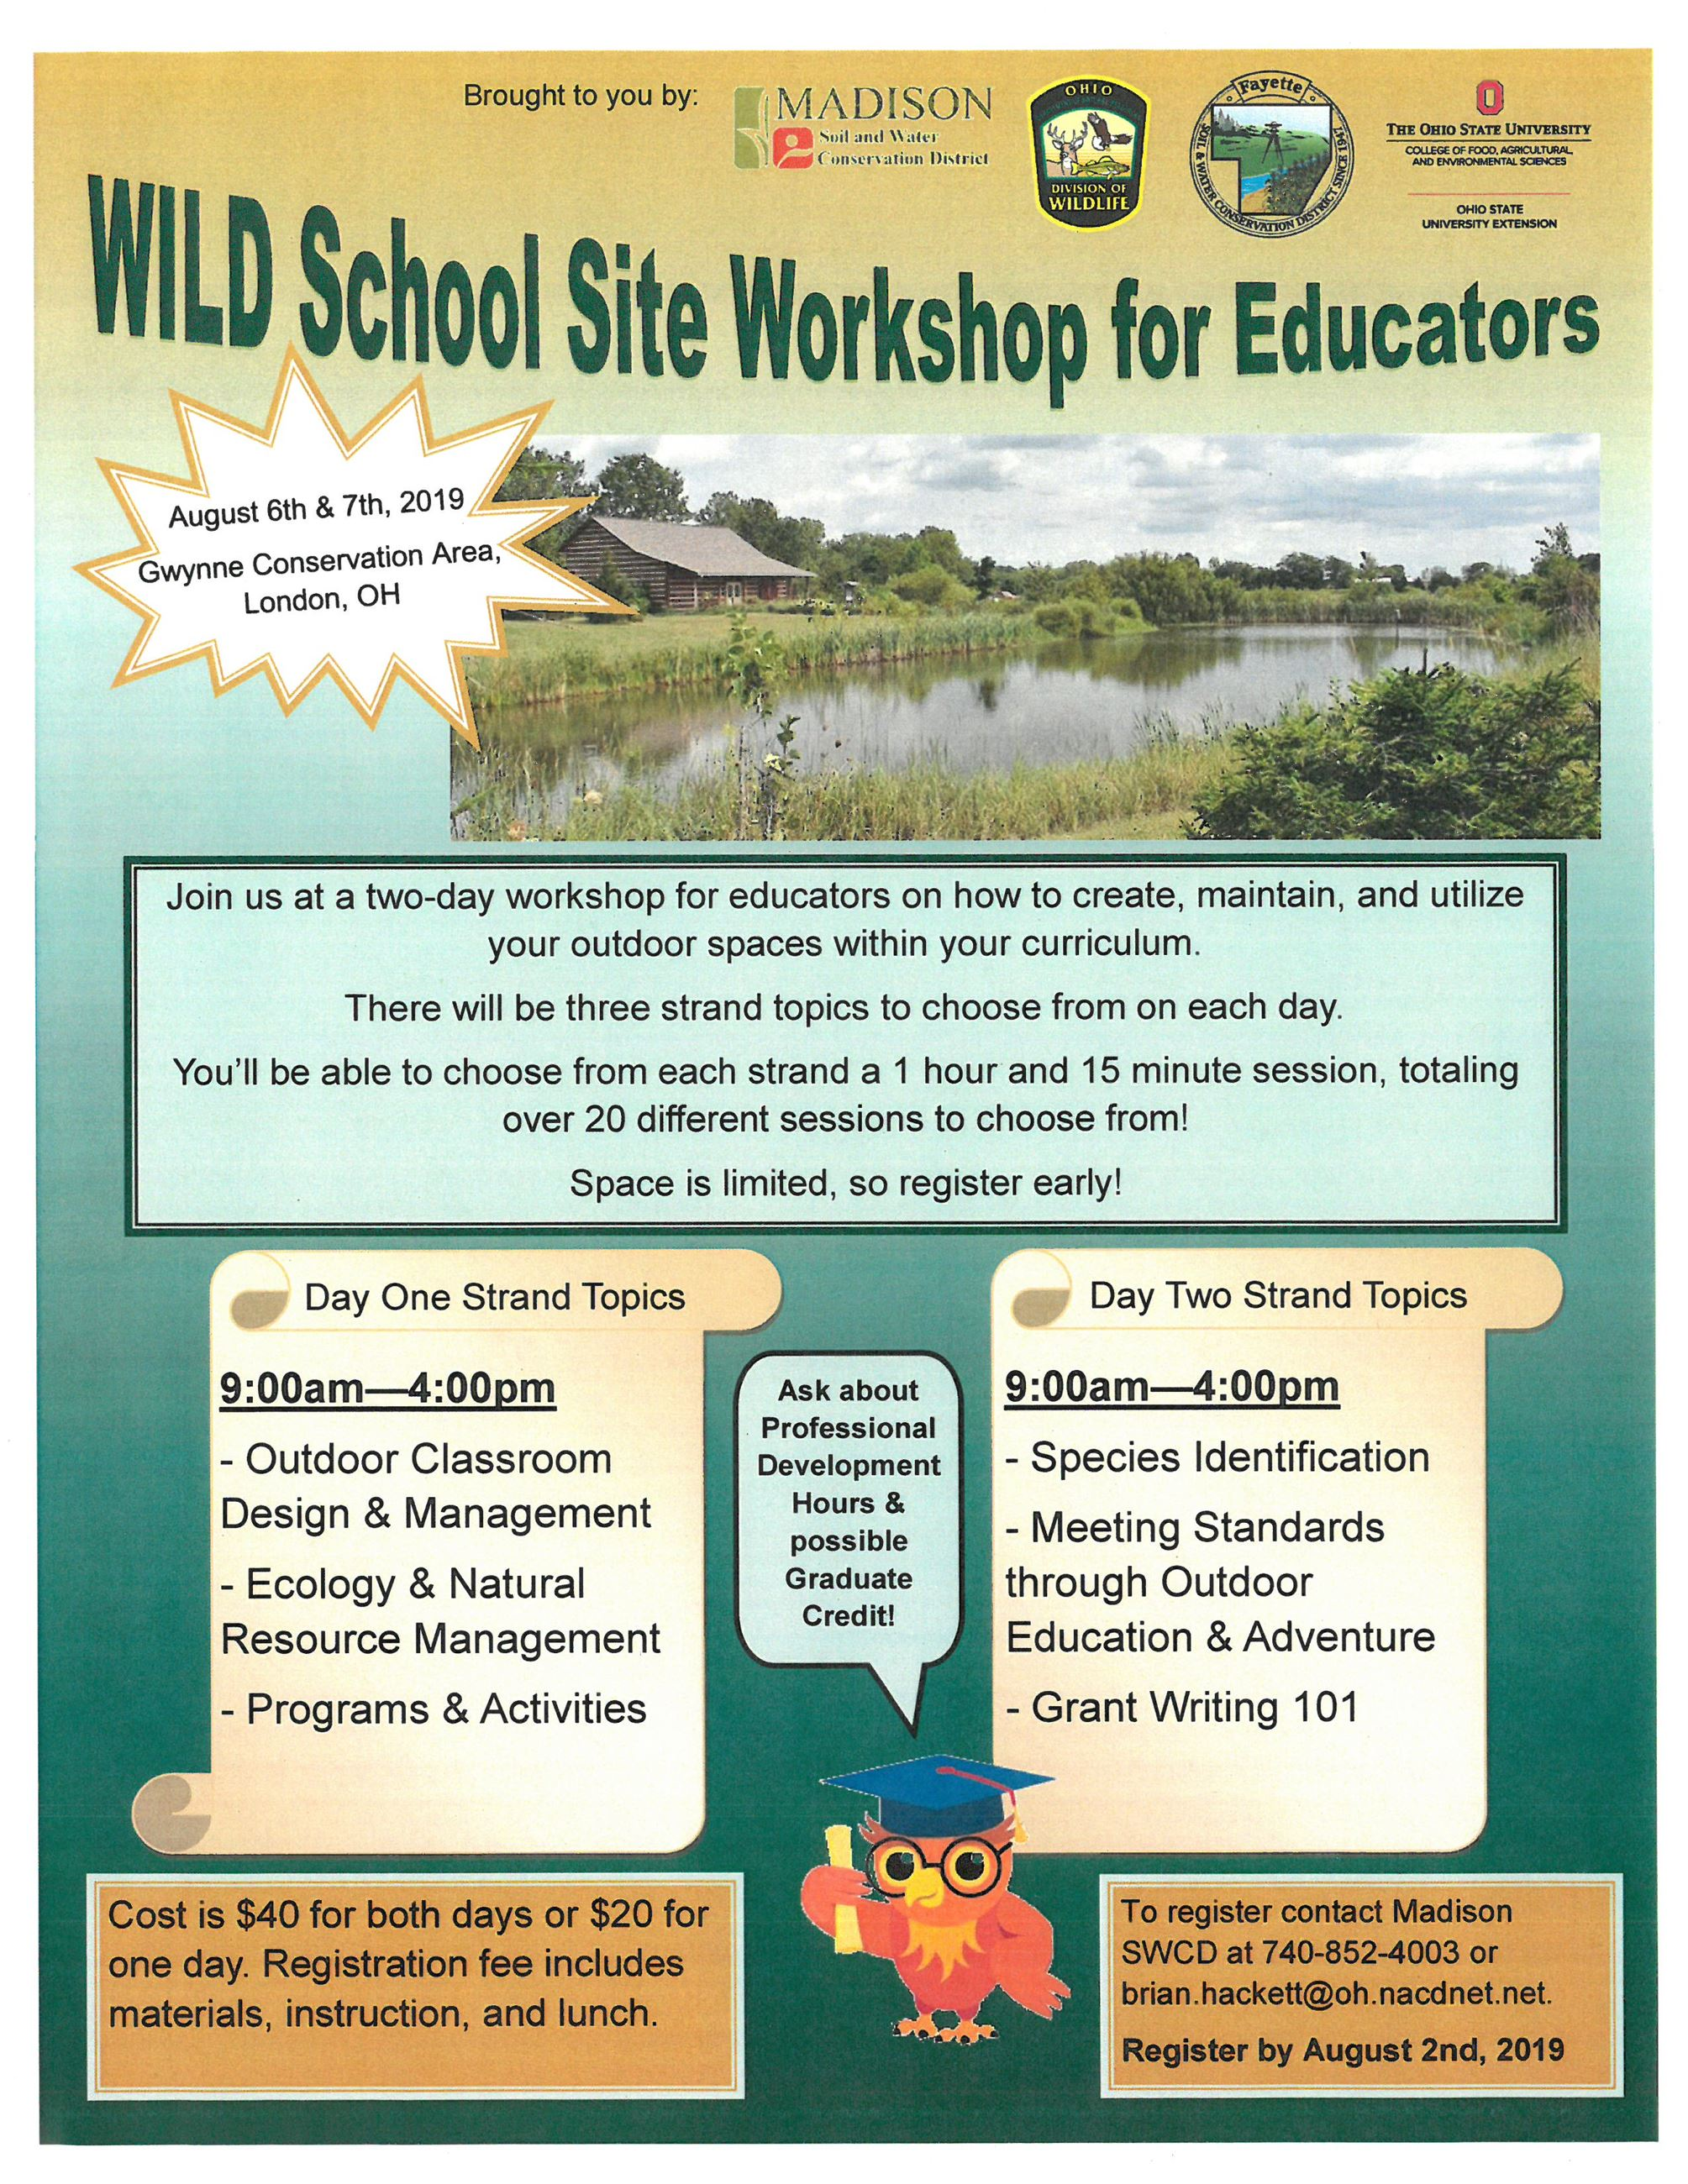 WILD_School_Site_Workshop_for_Educators